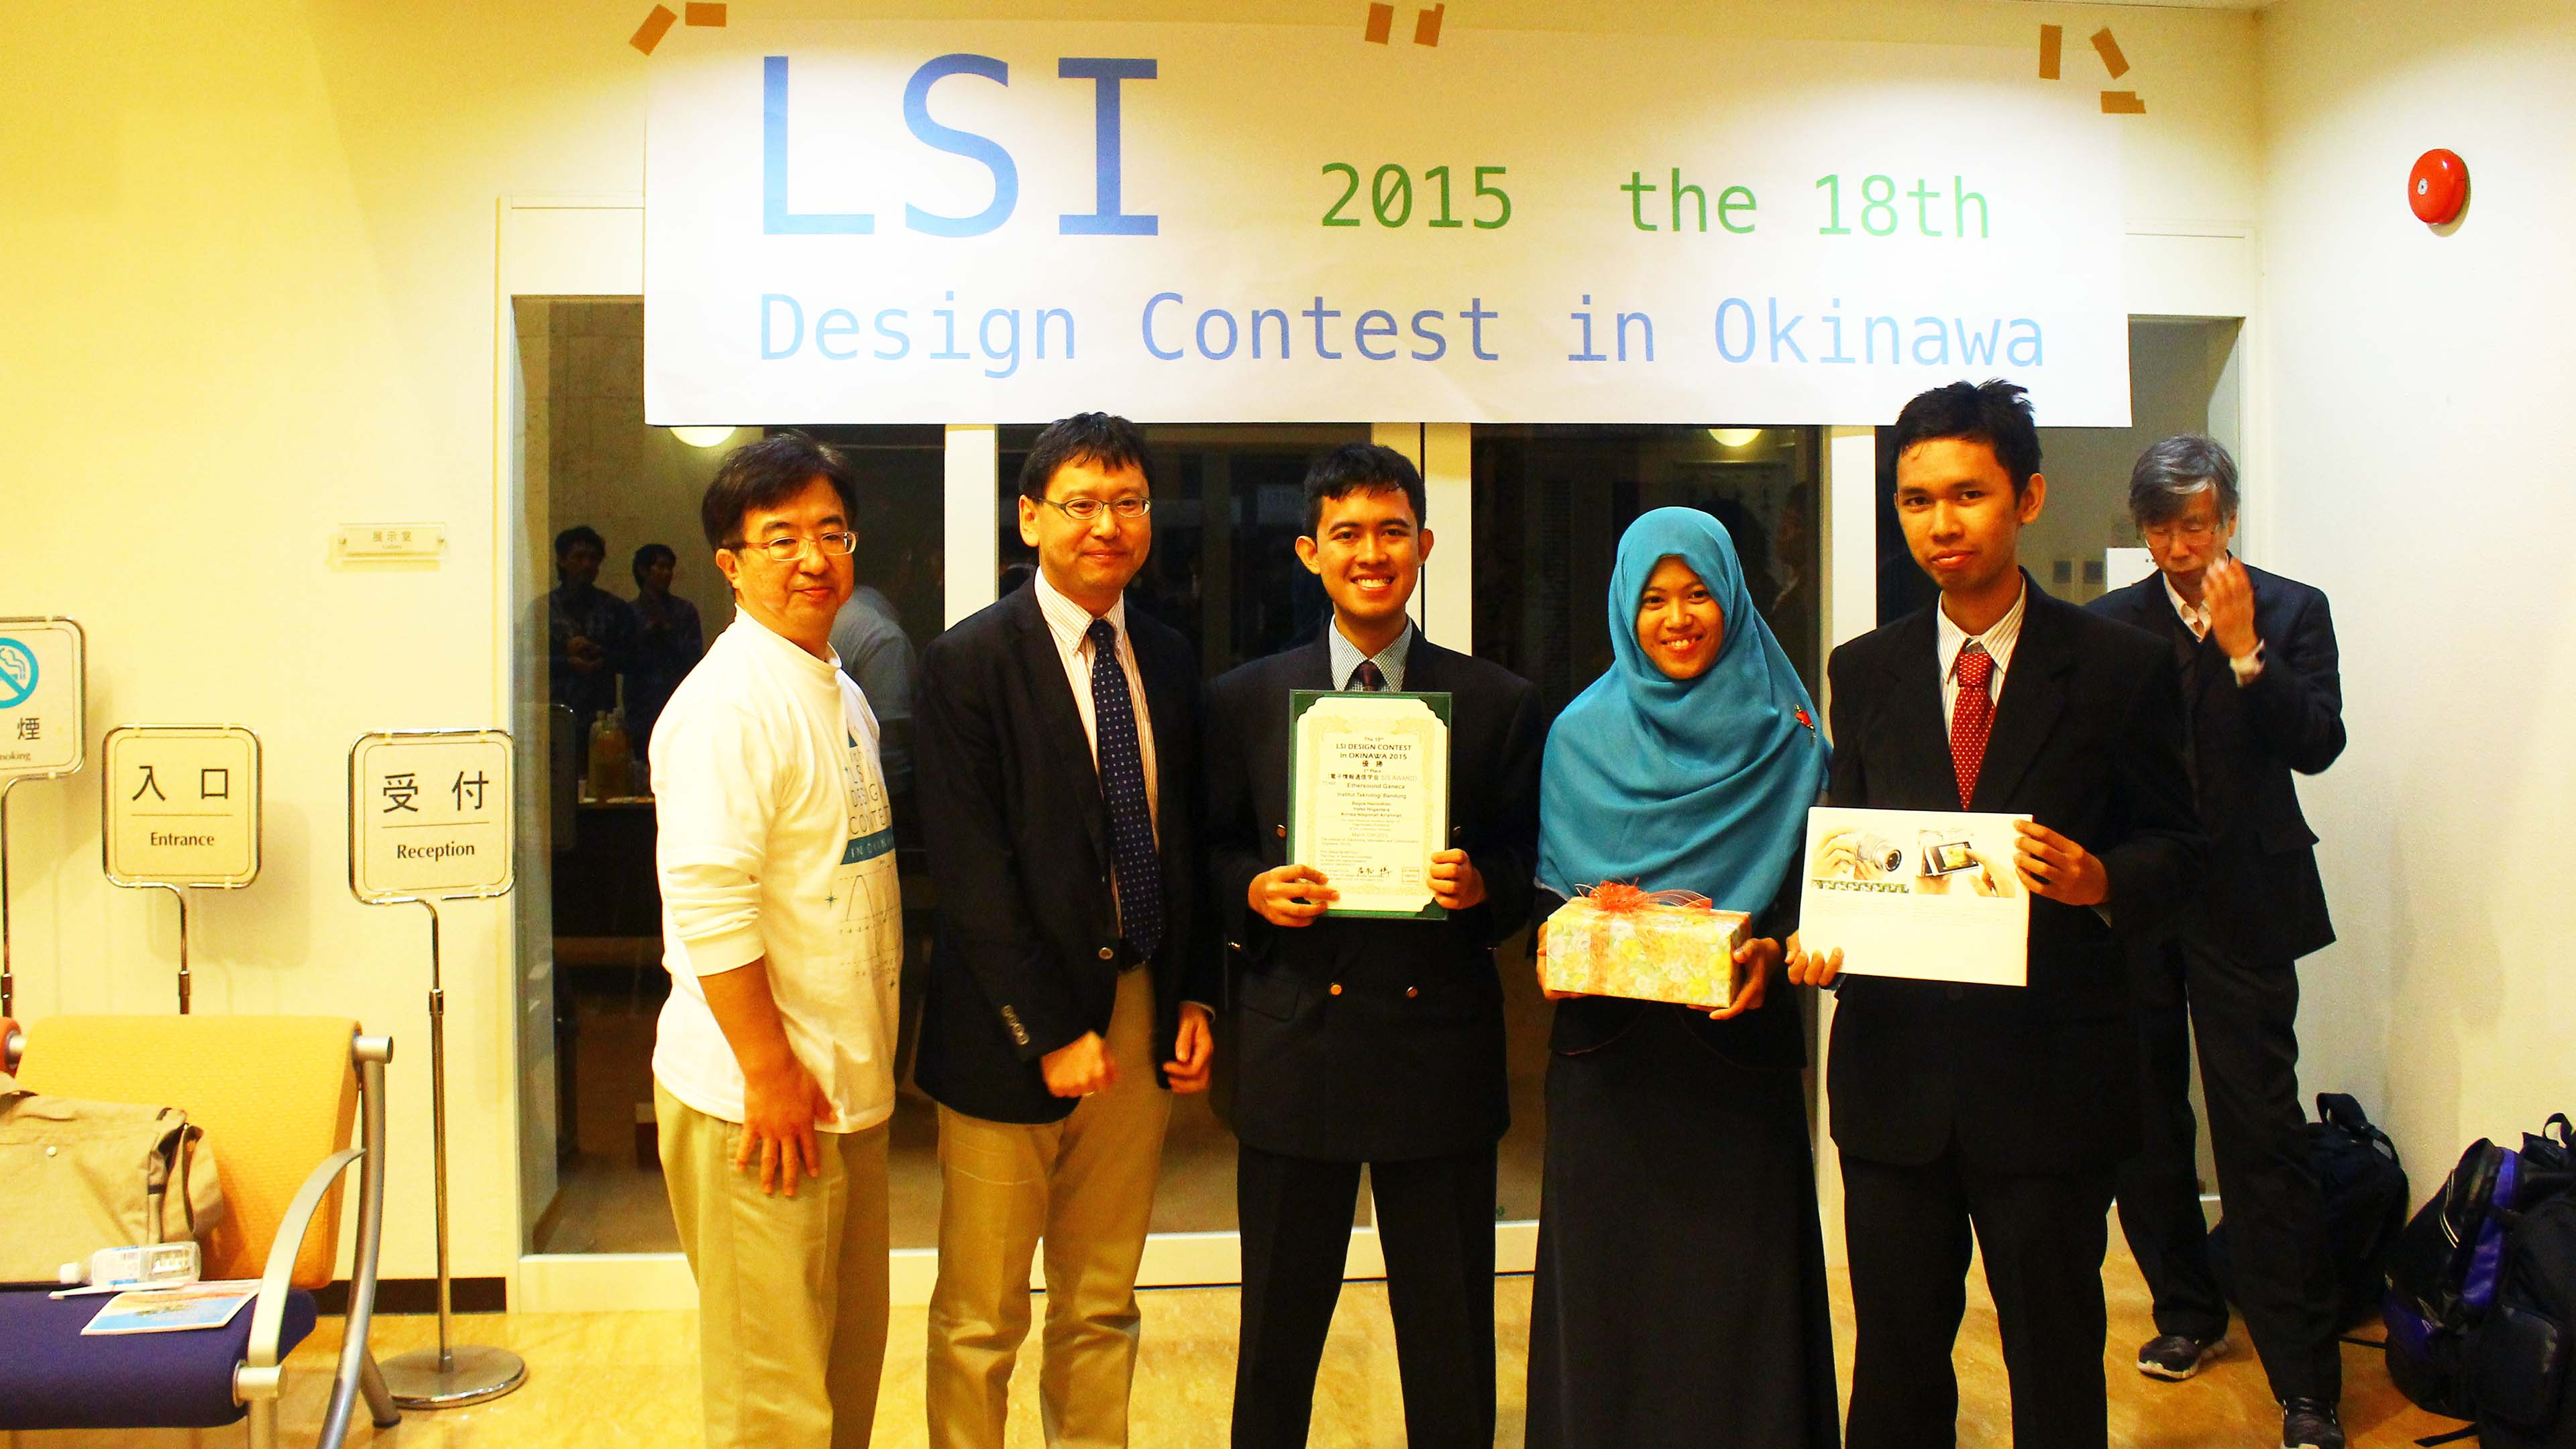 SiS Award was given to the 1st Winner of the contest